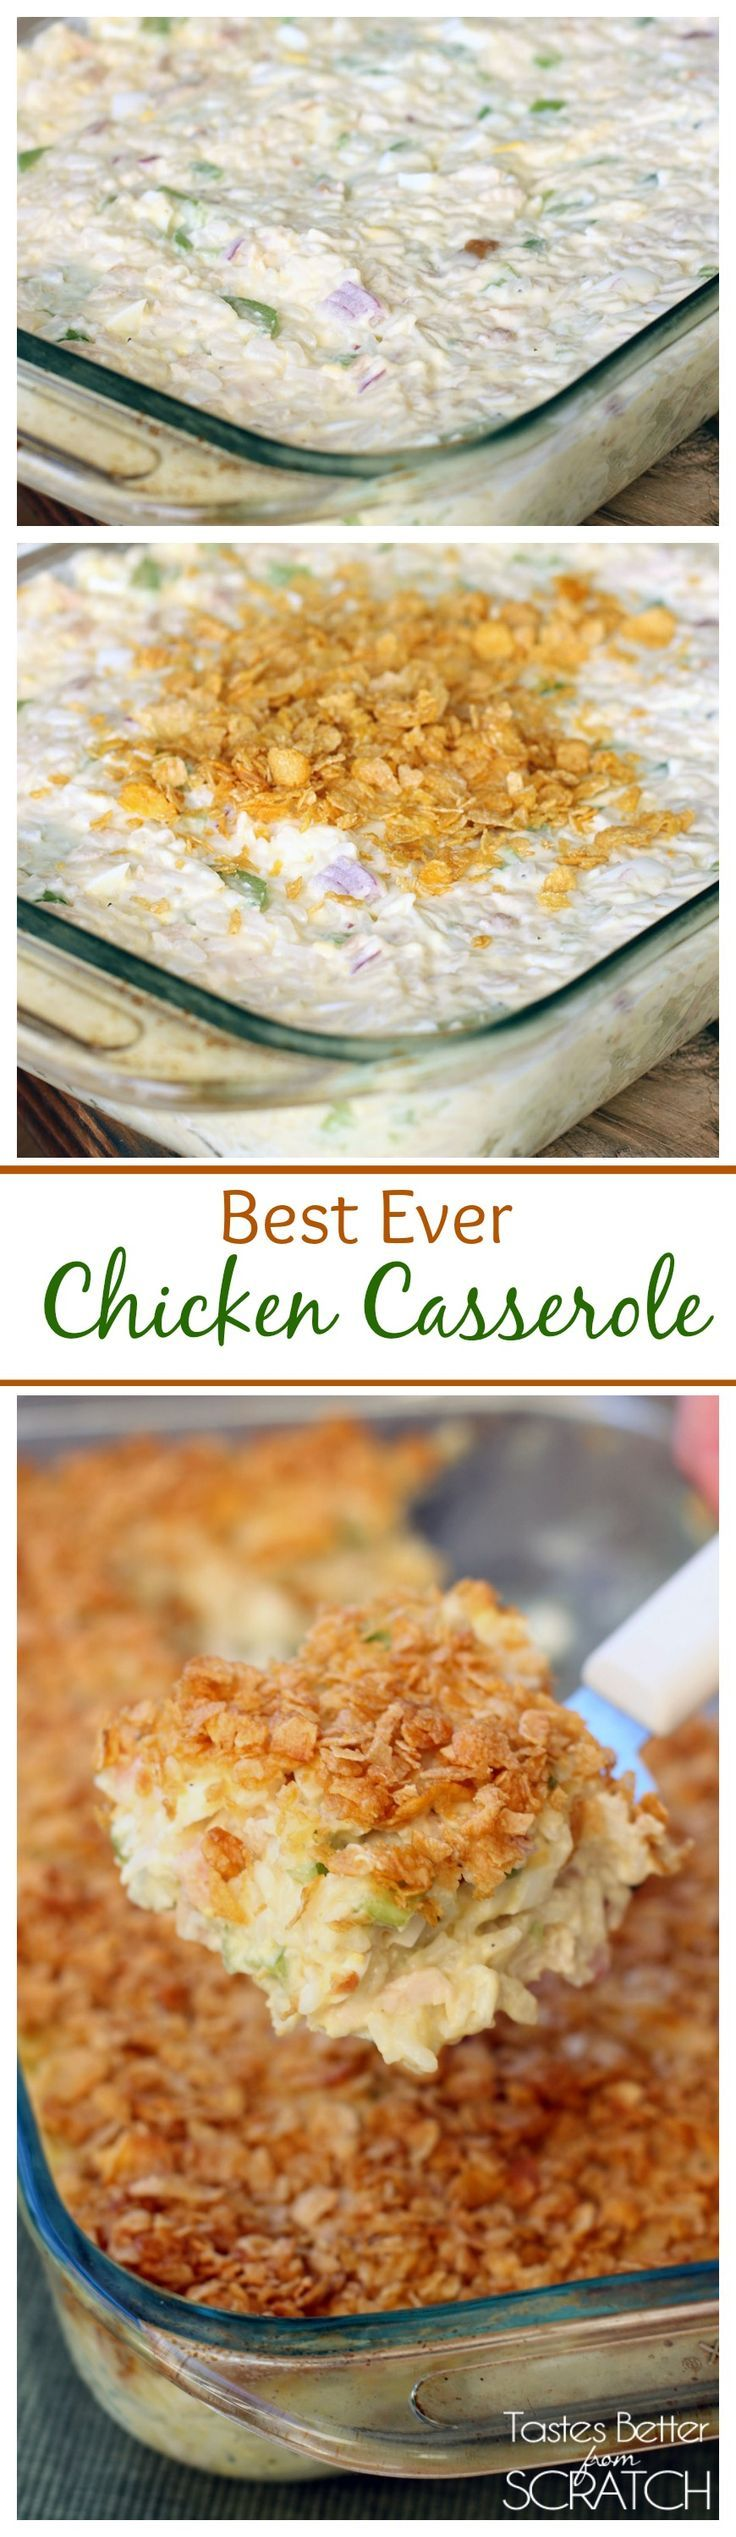 Mom's Chicken Casserole Recipe on MyRecipeMagic.com